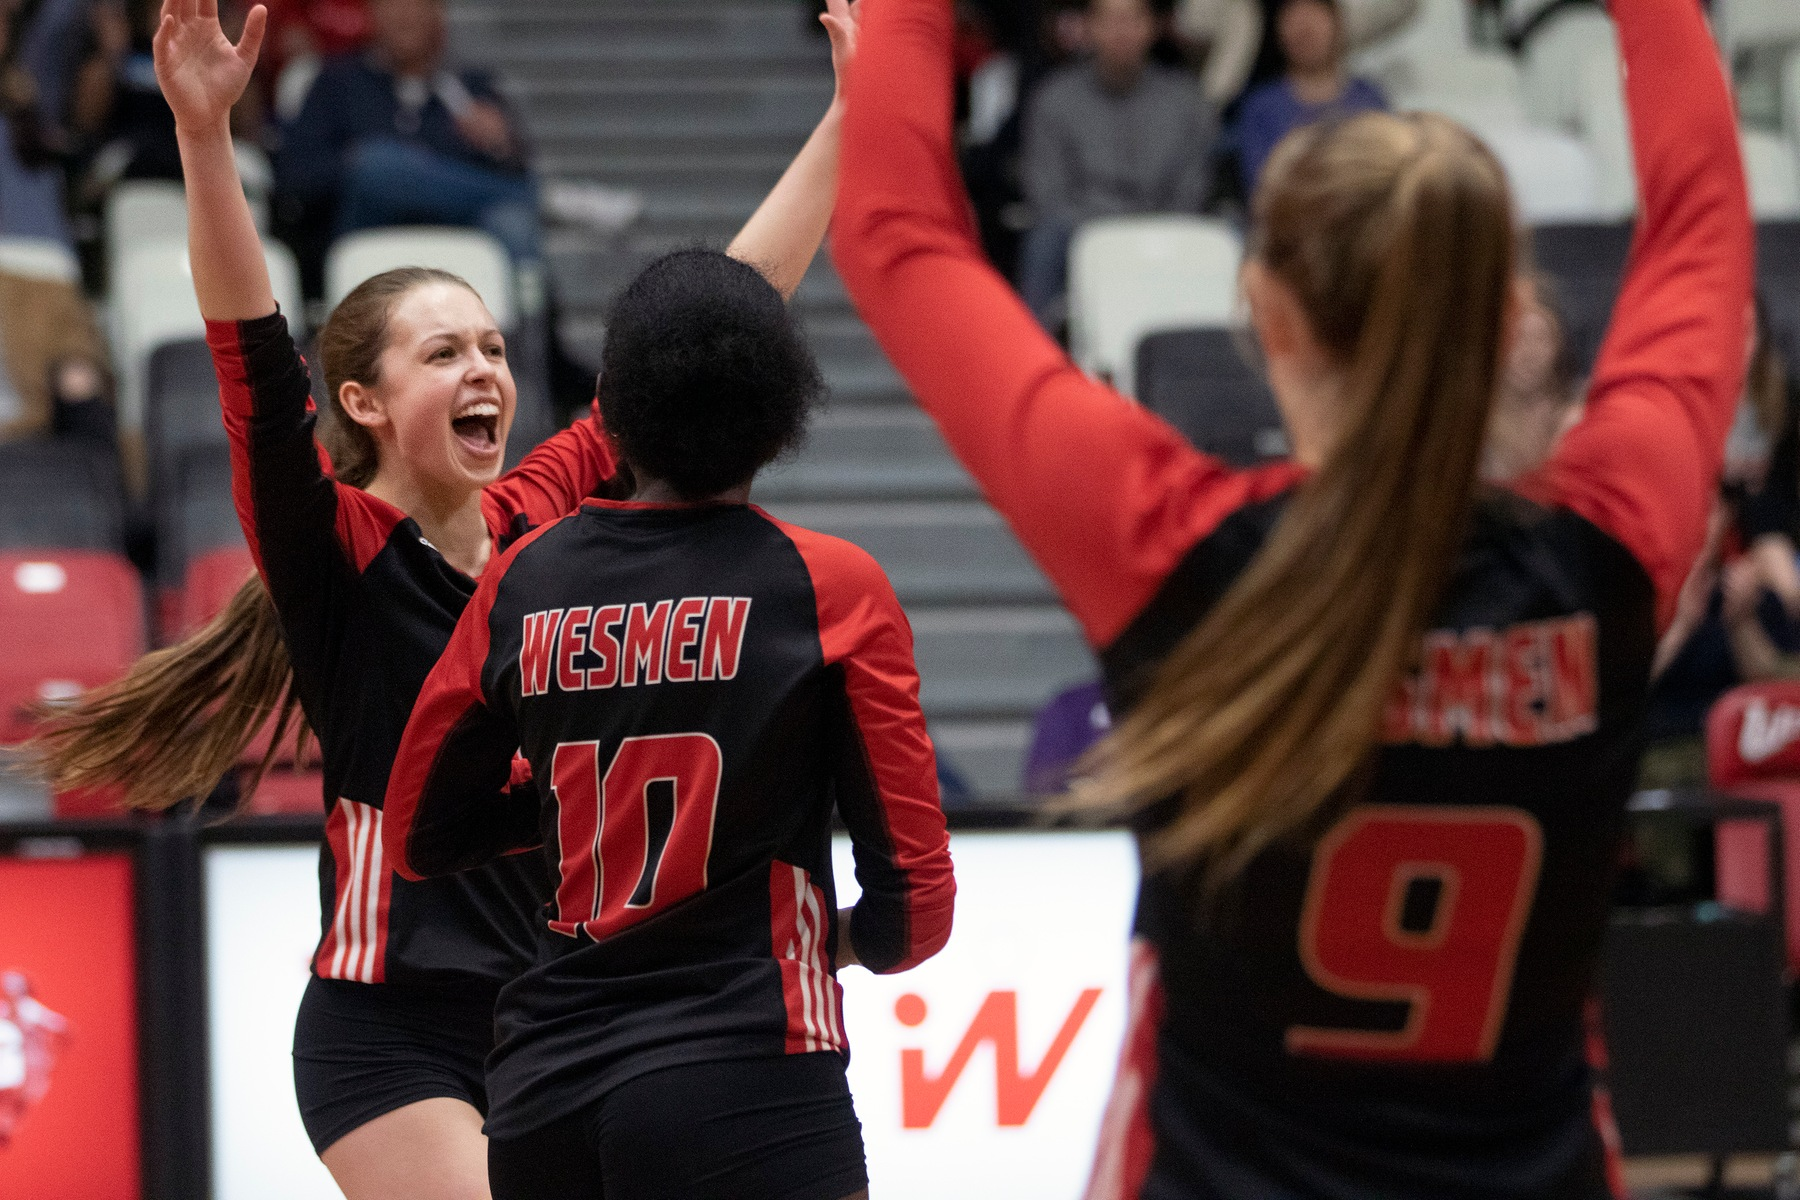 The Wesmen women's volleyball team celebrates a point in the first set of a victory over the Calgary Dinos in a women's volleyball match Saturday, Feb. 8, 2020. (David Larkins/Wesmen Athletics)